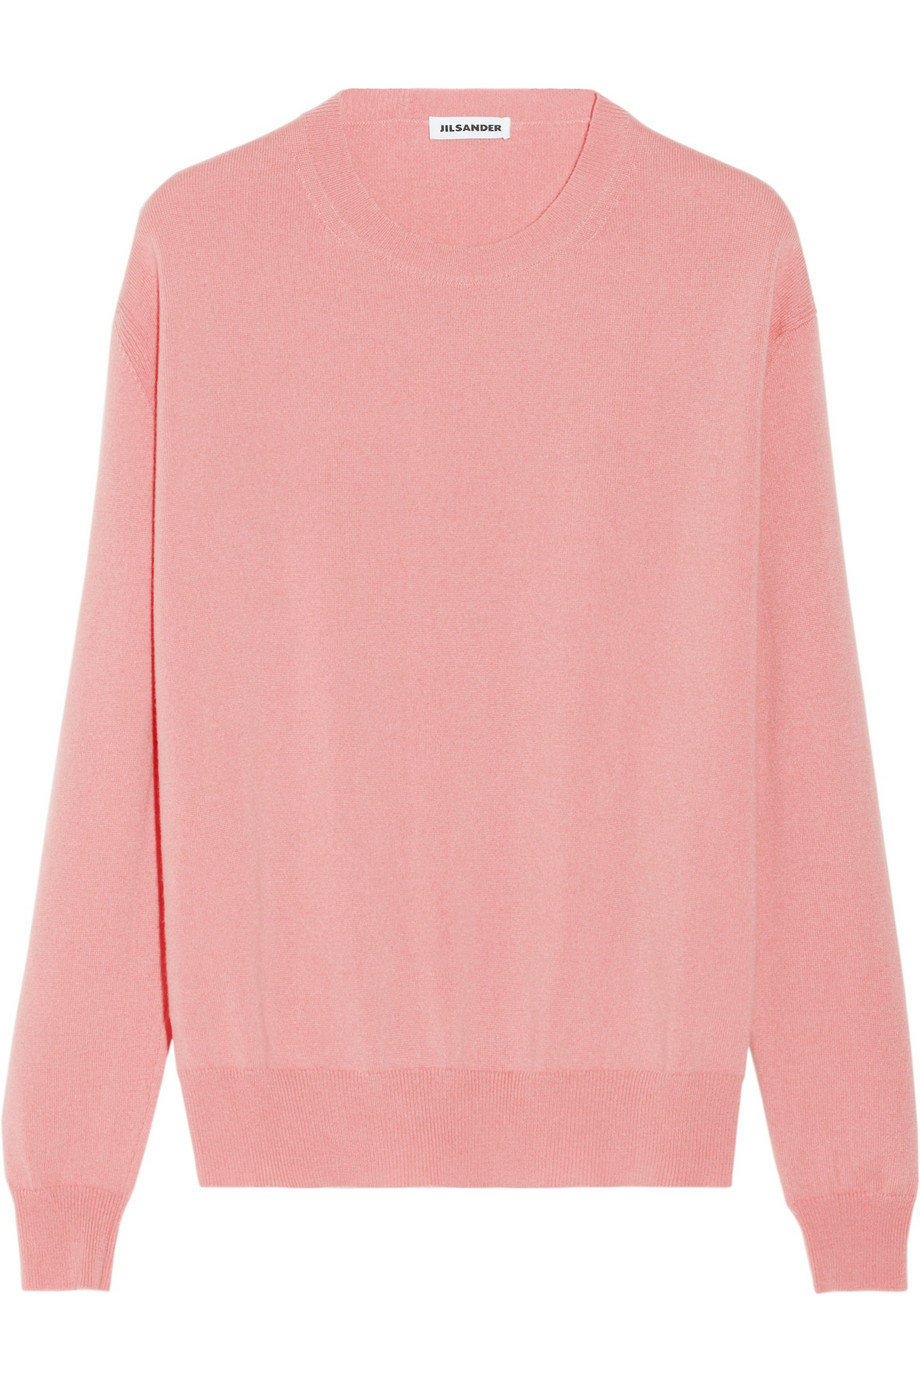 Jil sander Cashmere Sweater in Pink | Lyst